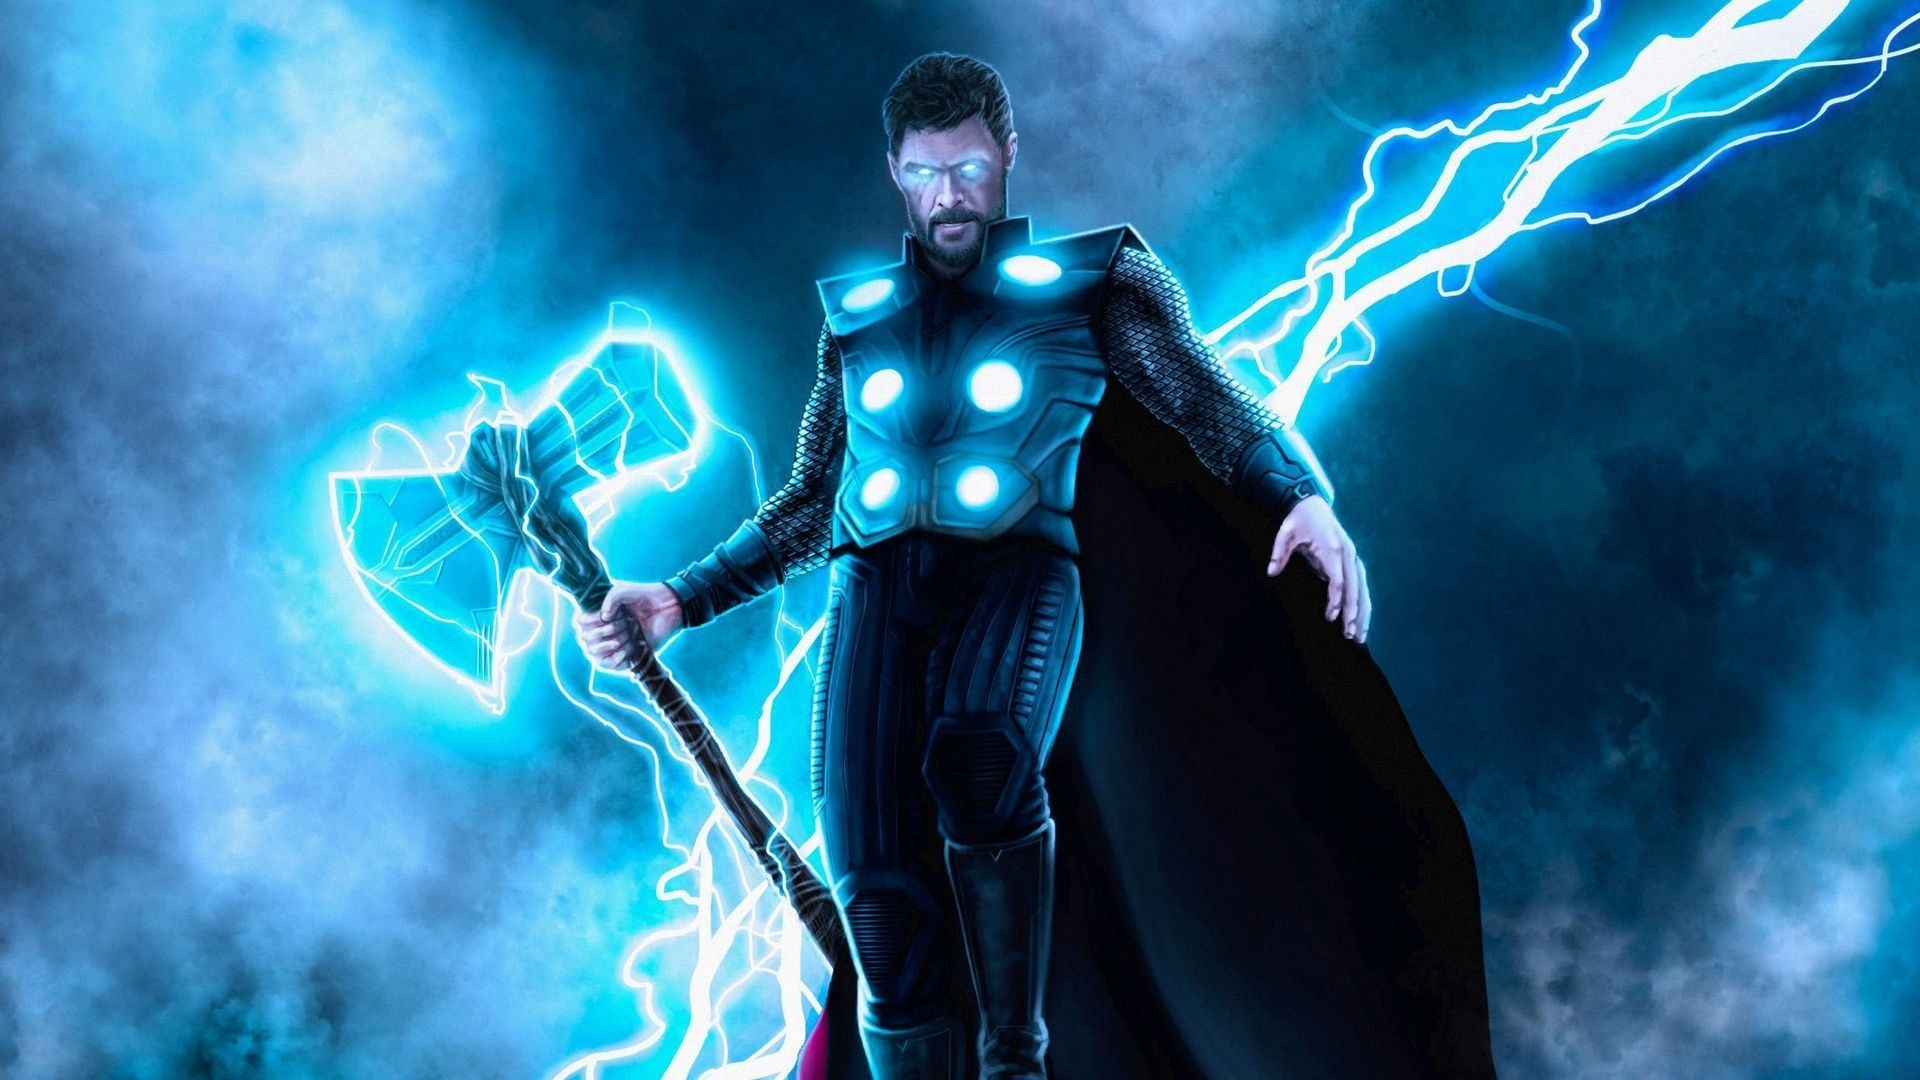 Thor cool background